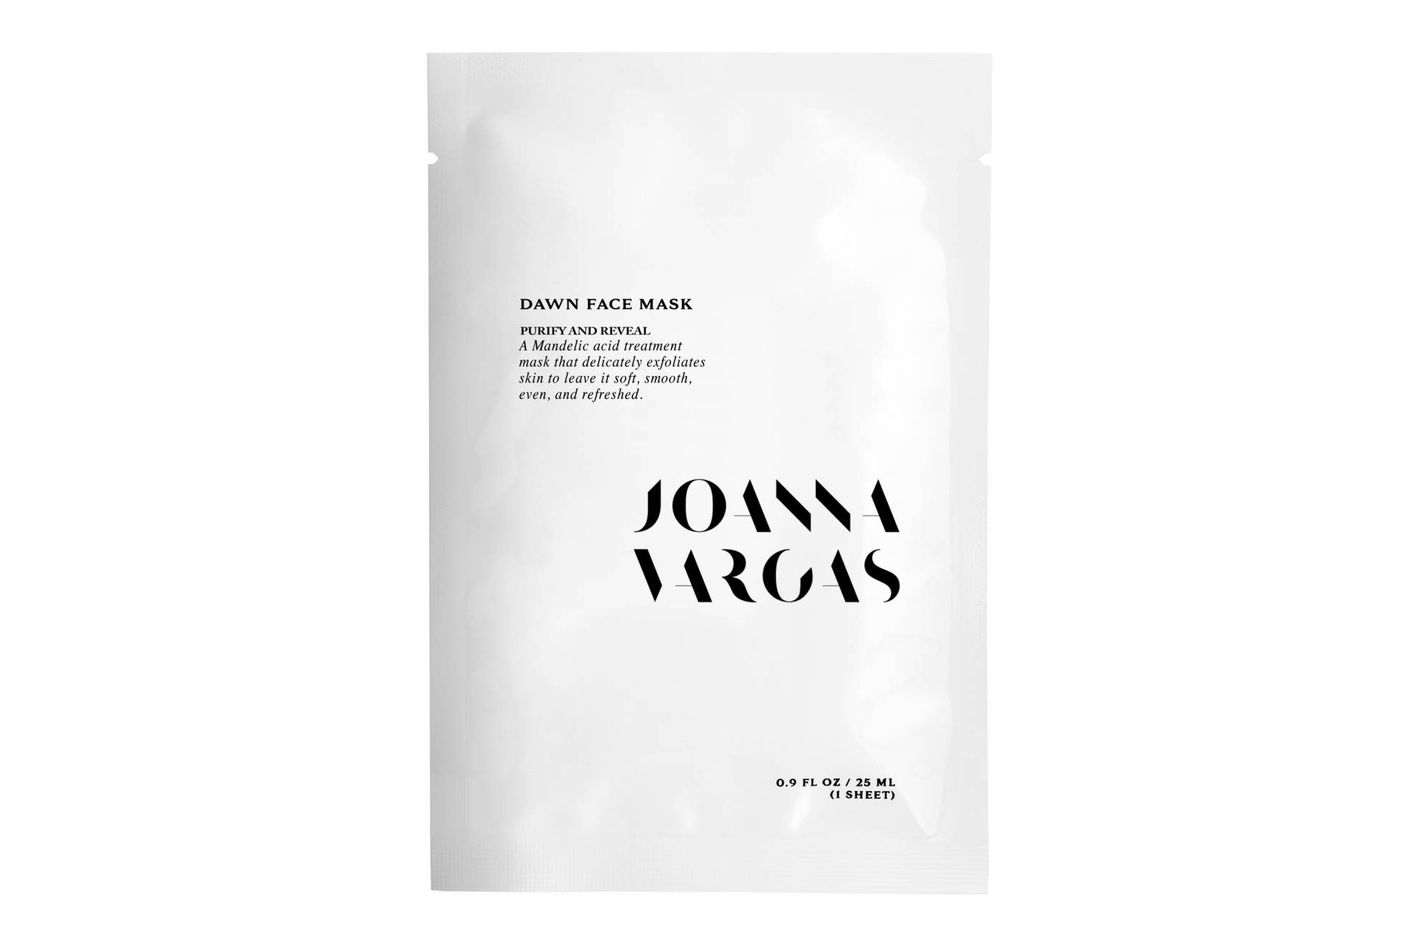 Joanna Vargas Dawn Face Mask Dawn